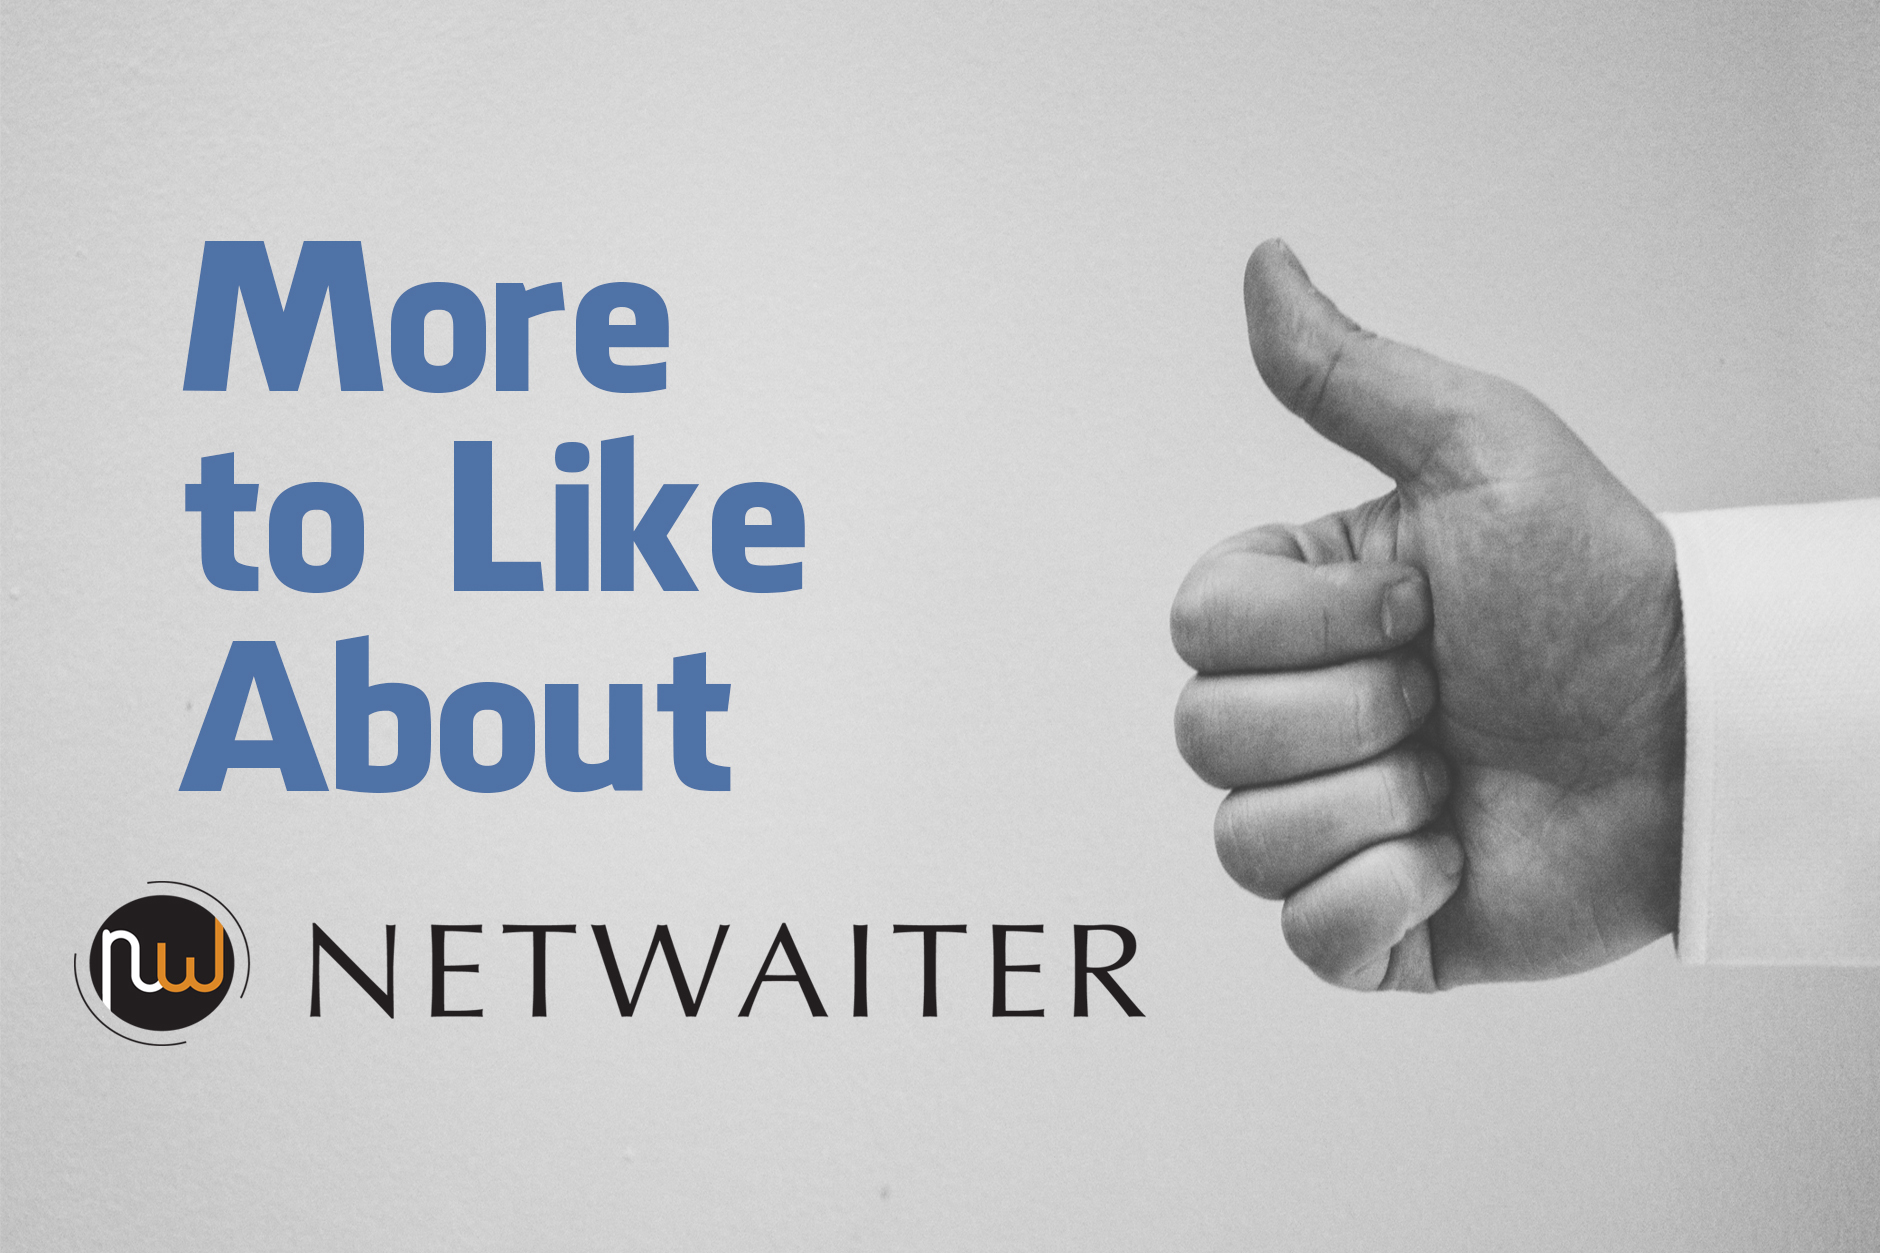 NetWaiter Broadcast Hub: More to Like About NetWaiter